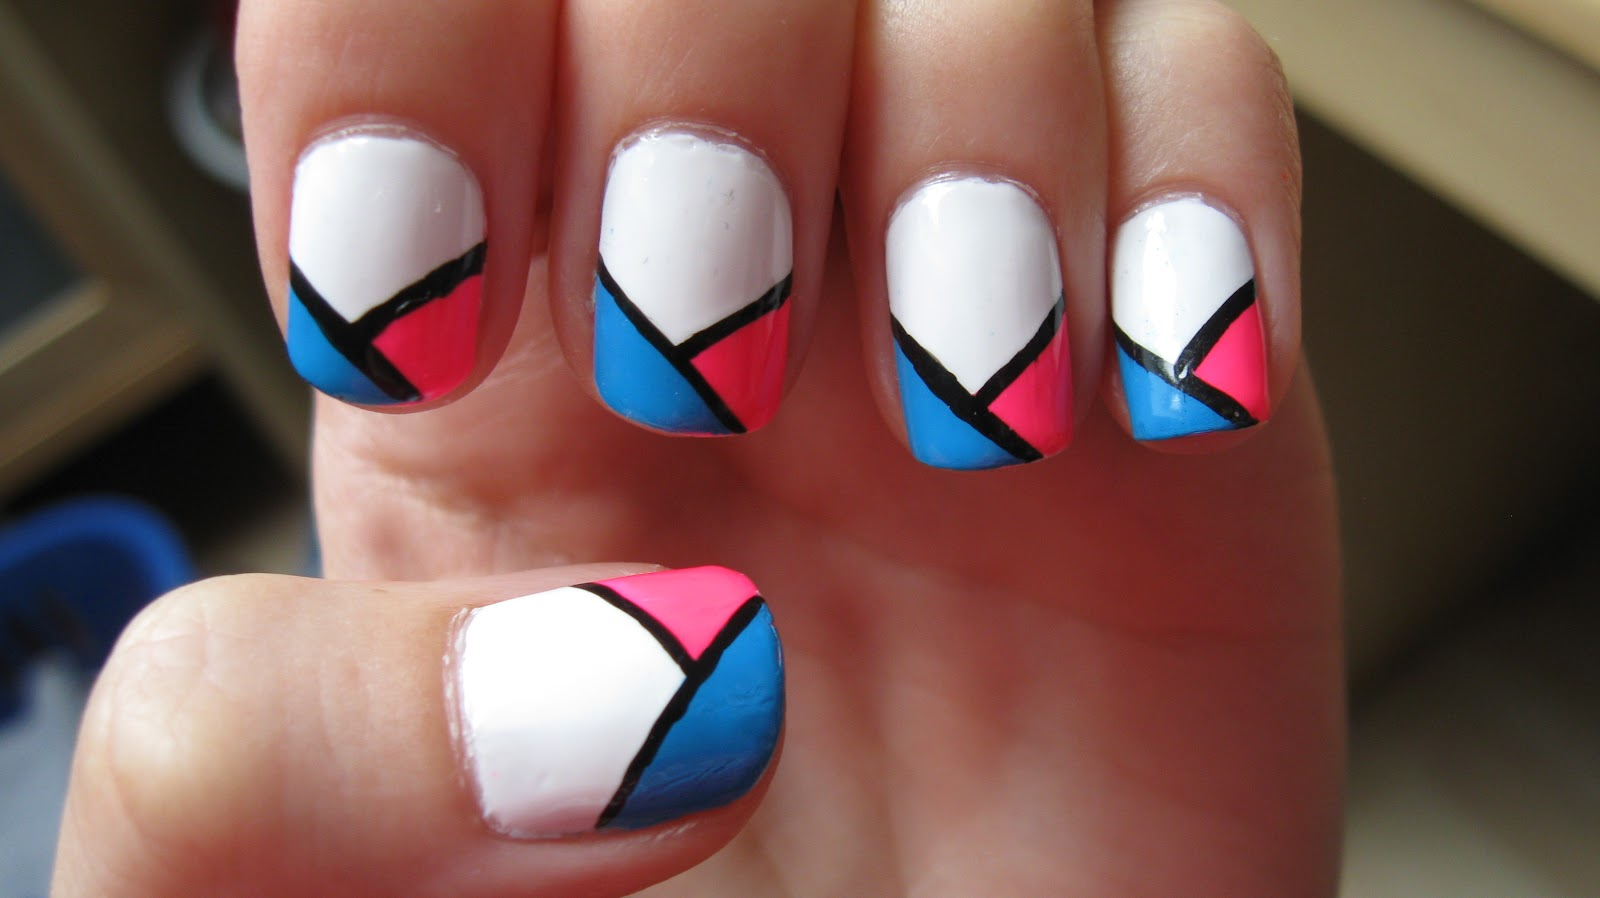 Fanning the Fumes - A Nail Art Blog: Neon Pink and Blue Wrapped Tips